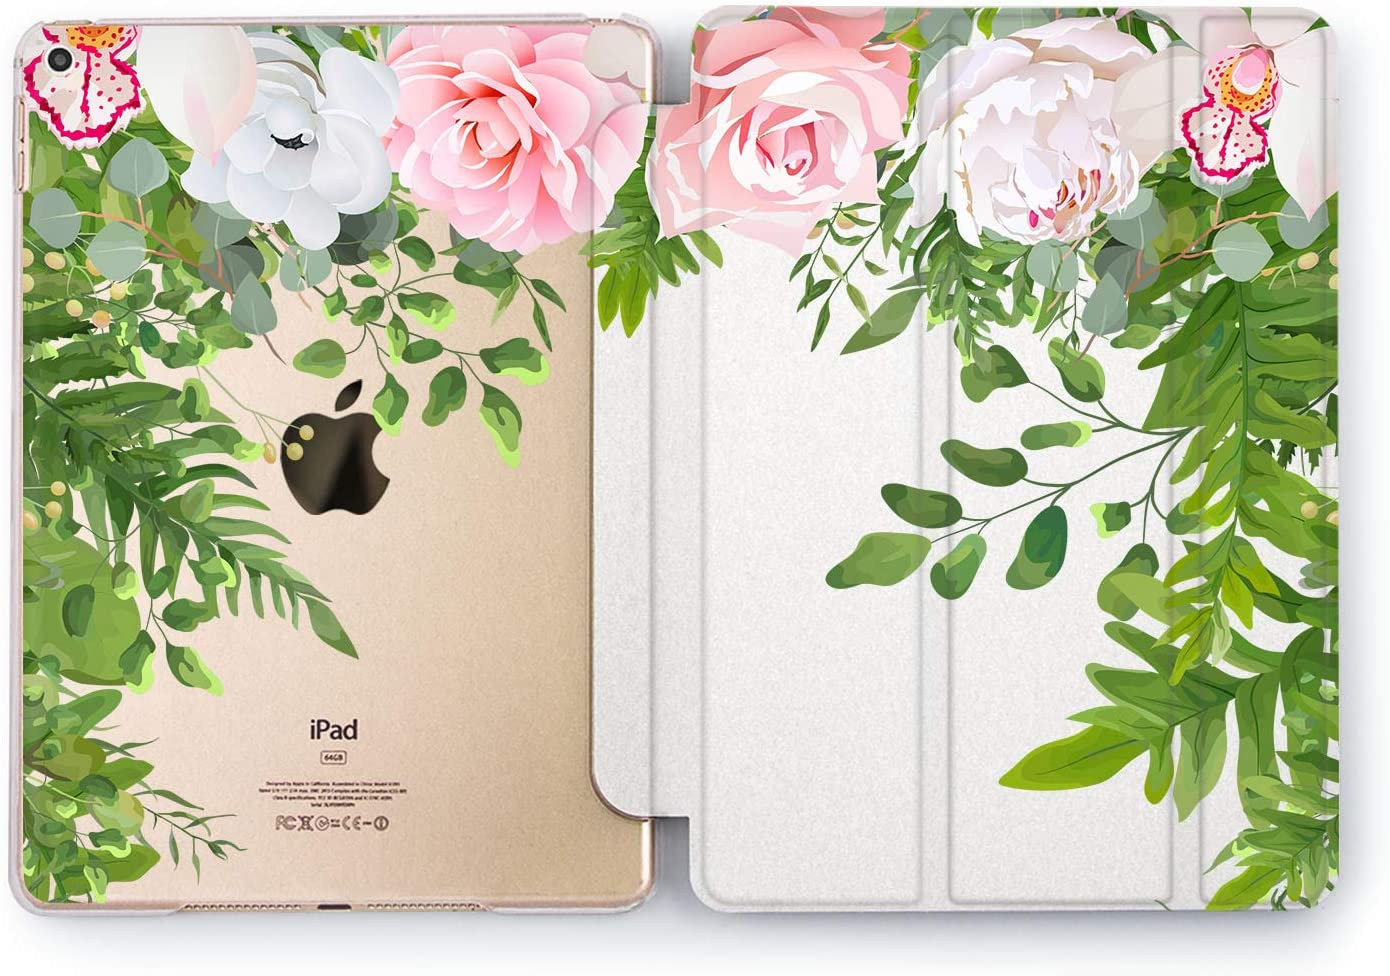 Wonder Wild Case Compatible with Apple iPad Peonies Thickets Pro 9.7 11 inch Mini 1 2 3 4 Air 2 10.5 12.9 11 10.2 5th 6th Gen Hard Cover Flowers Natural Greenery Fern Plants Girly Gentle Latest